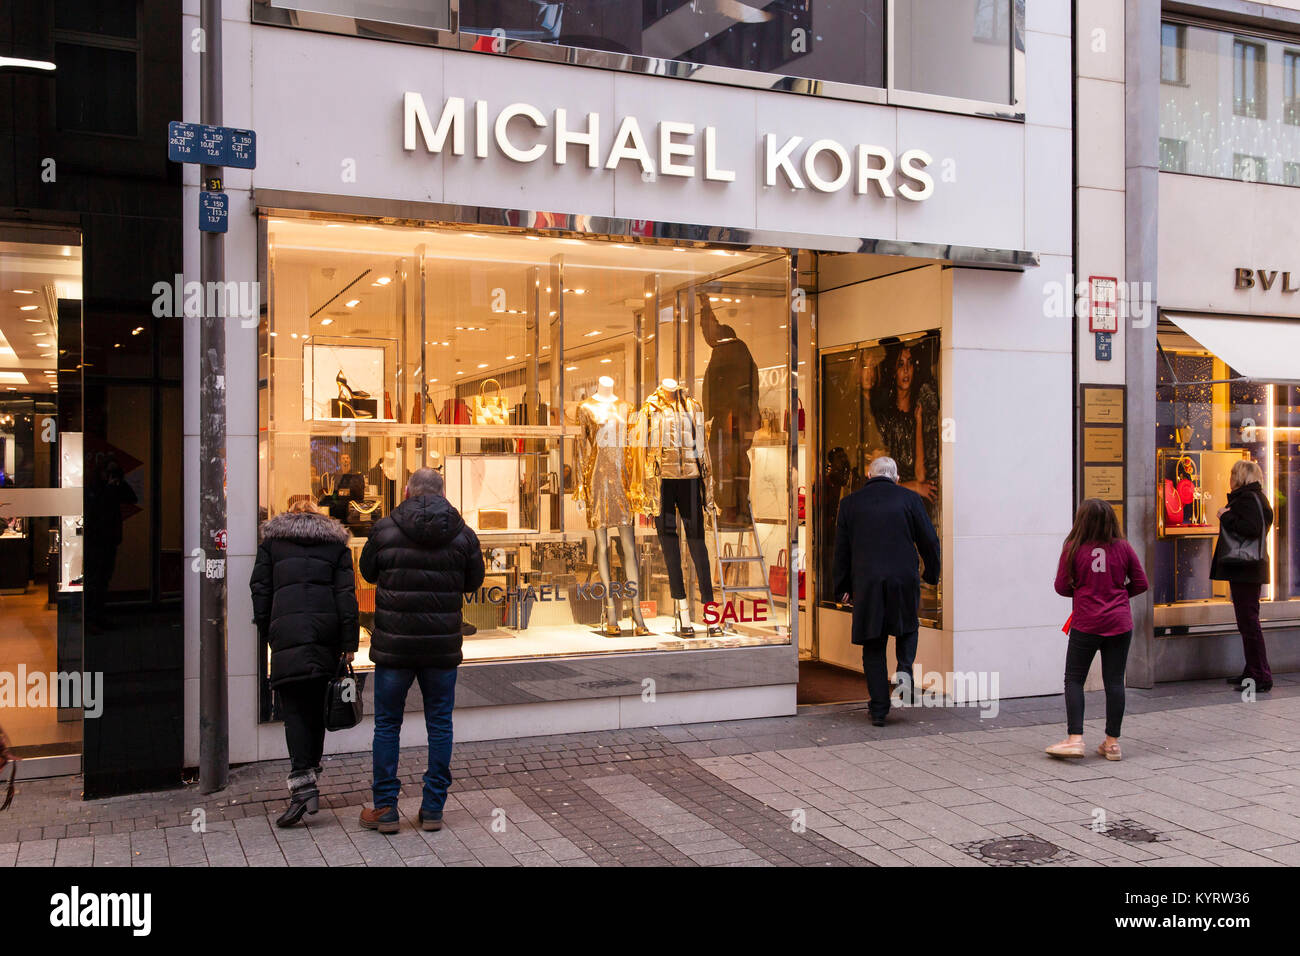 michael kors fashion store shop stock photos michael. Black Bedroom Furniture Sets. Home Design Ideas